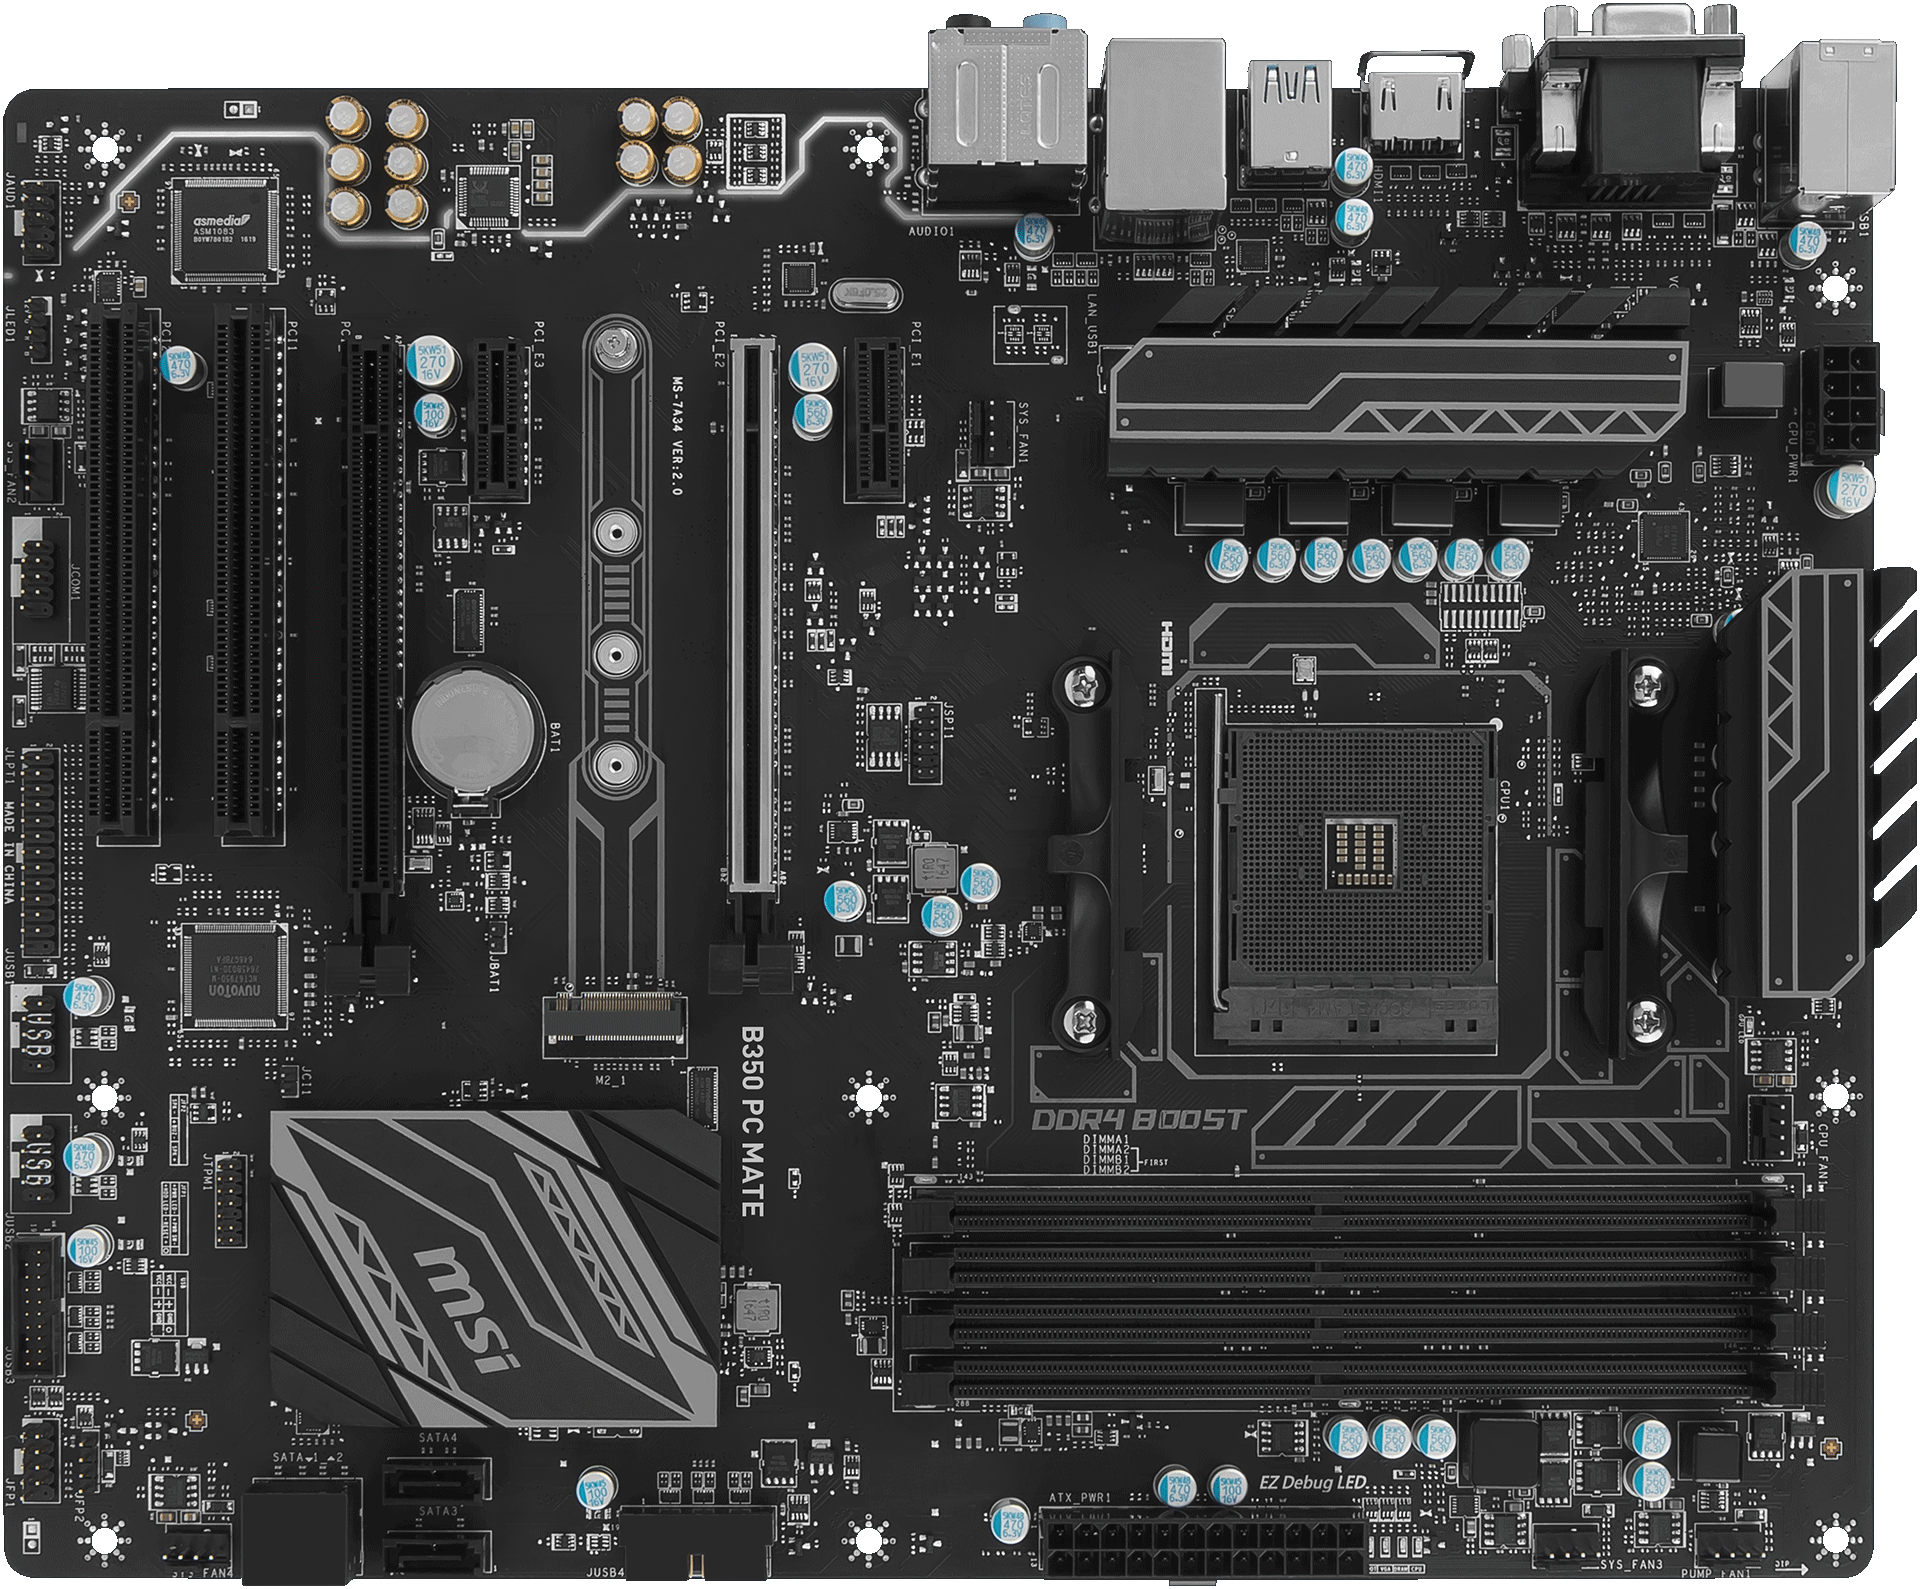 B350 Pc Mate Motherboard The World Leader In Design Pics Photos Computer Diagram With Following Parts Labeled Cpu Tuning